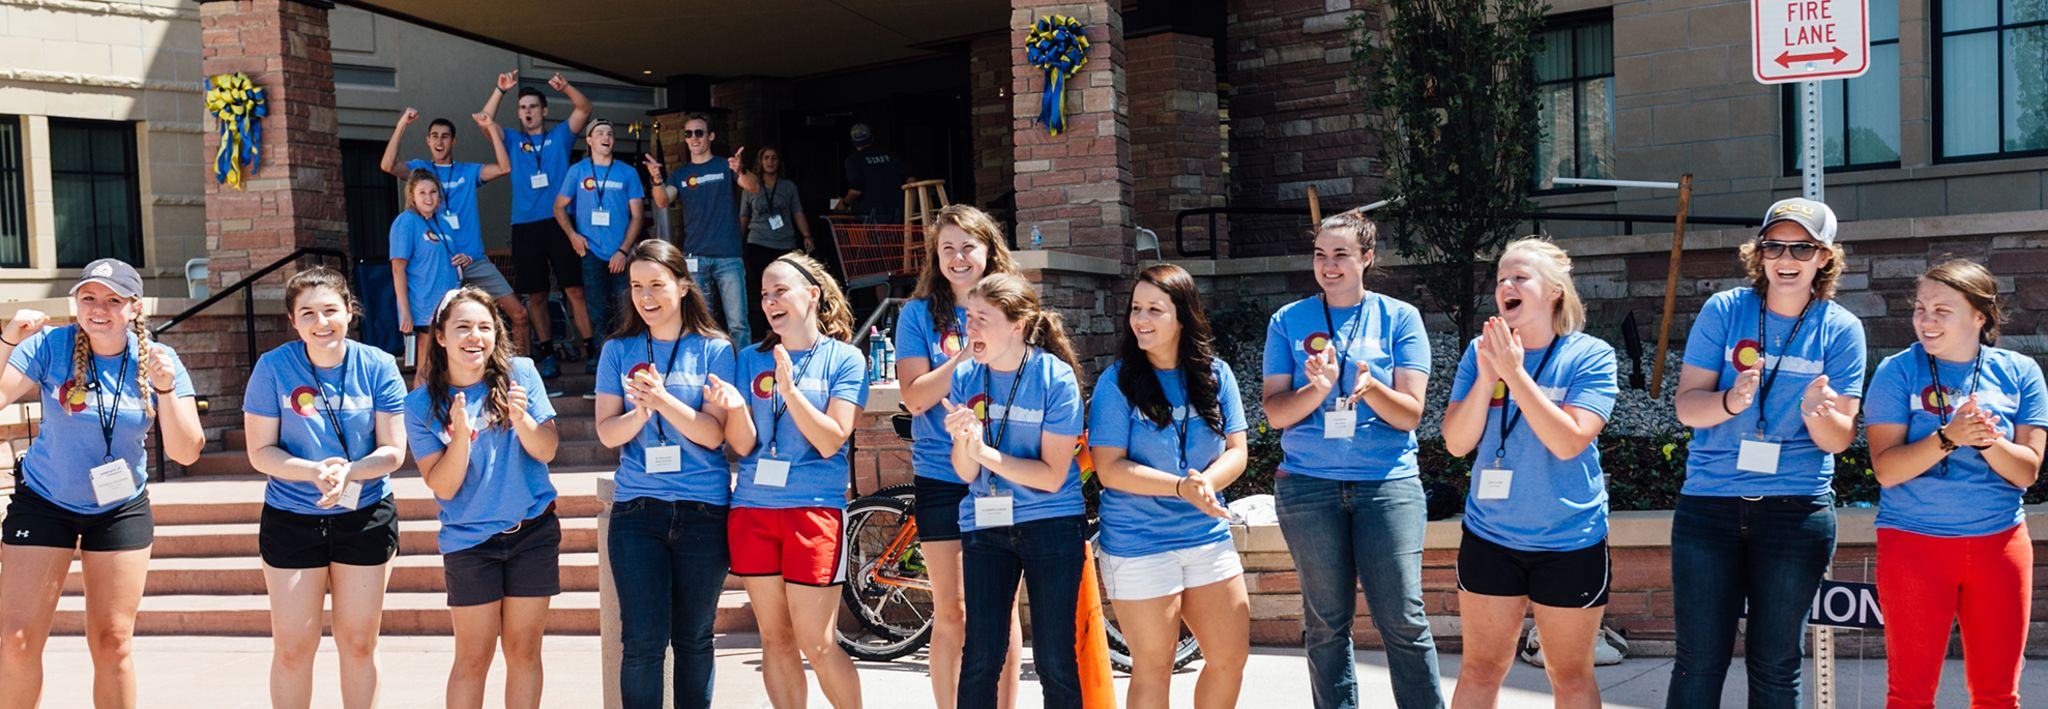 Student move-in-day is taking place at Colorado Christian University.